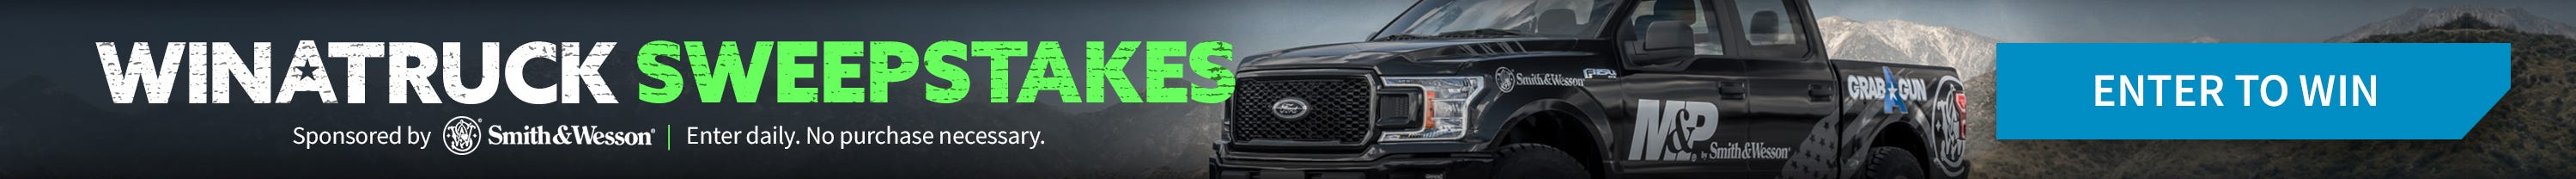 Win A Truck Giveaway! Signup to win a 2019 Ford F-150